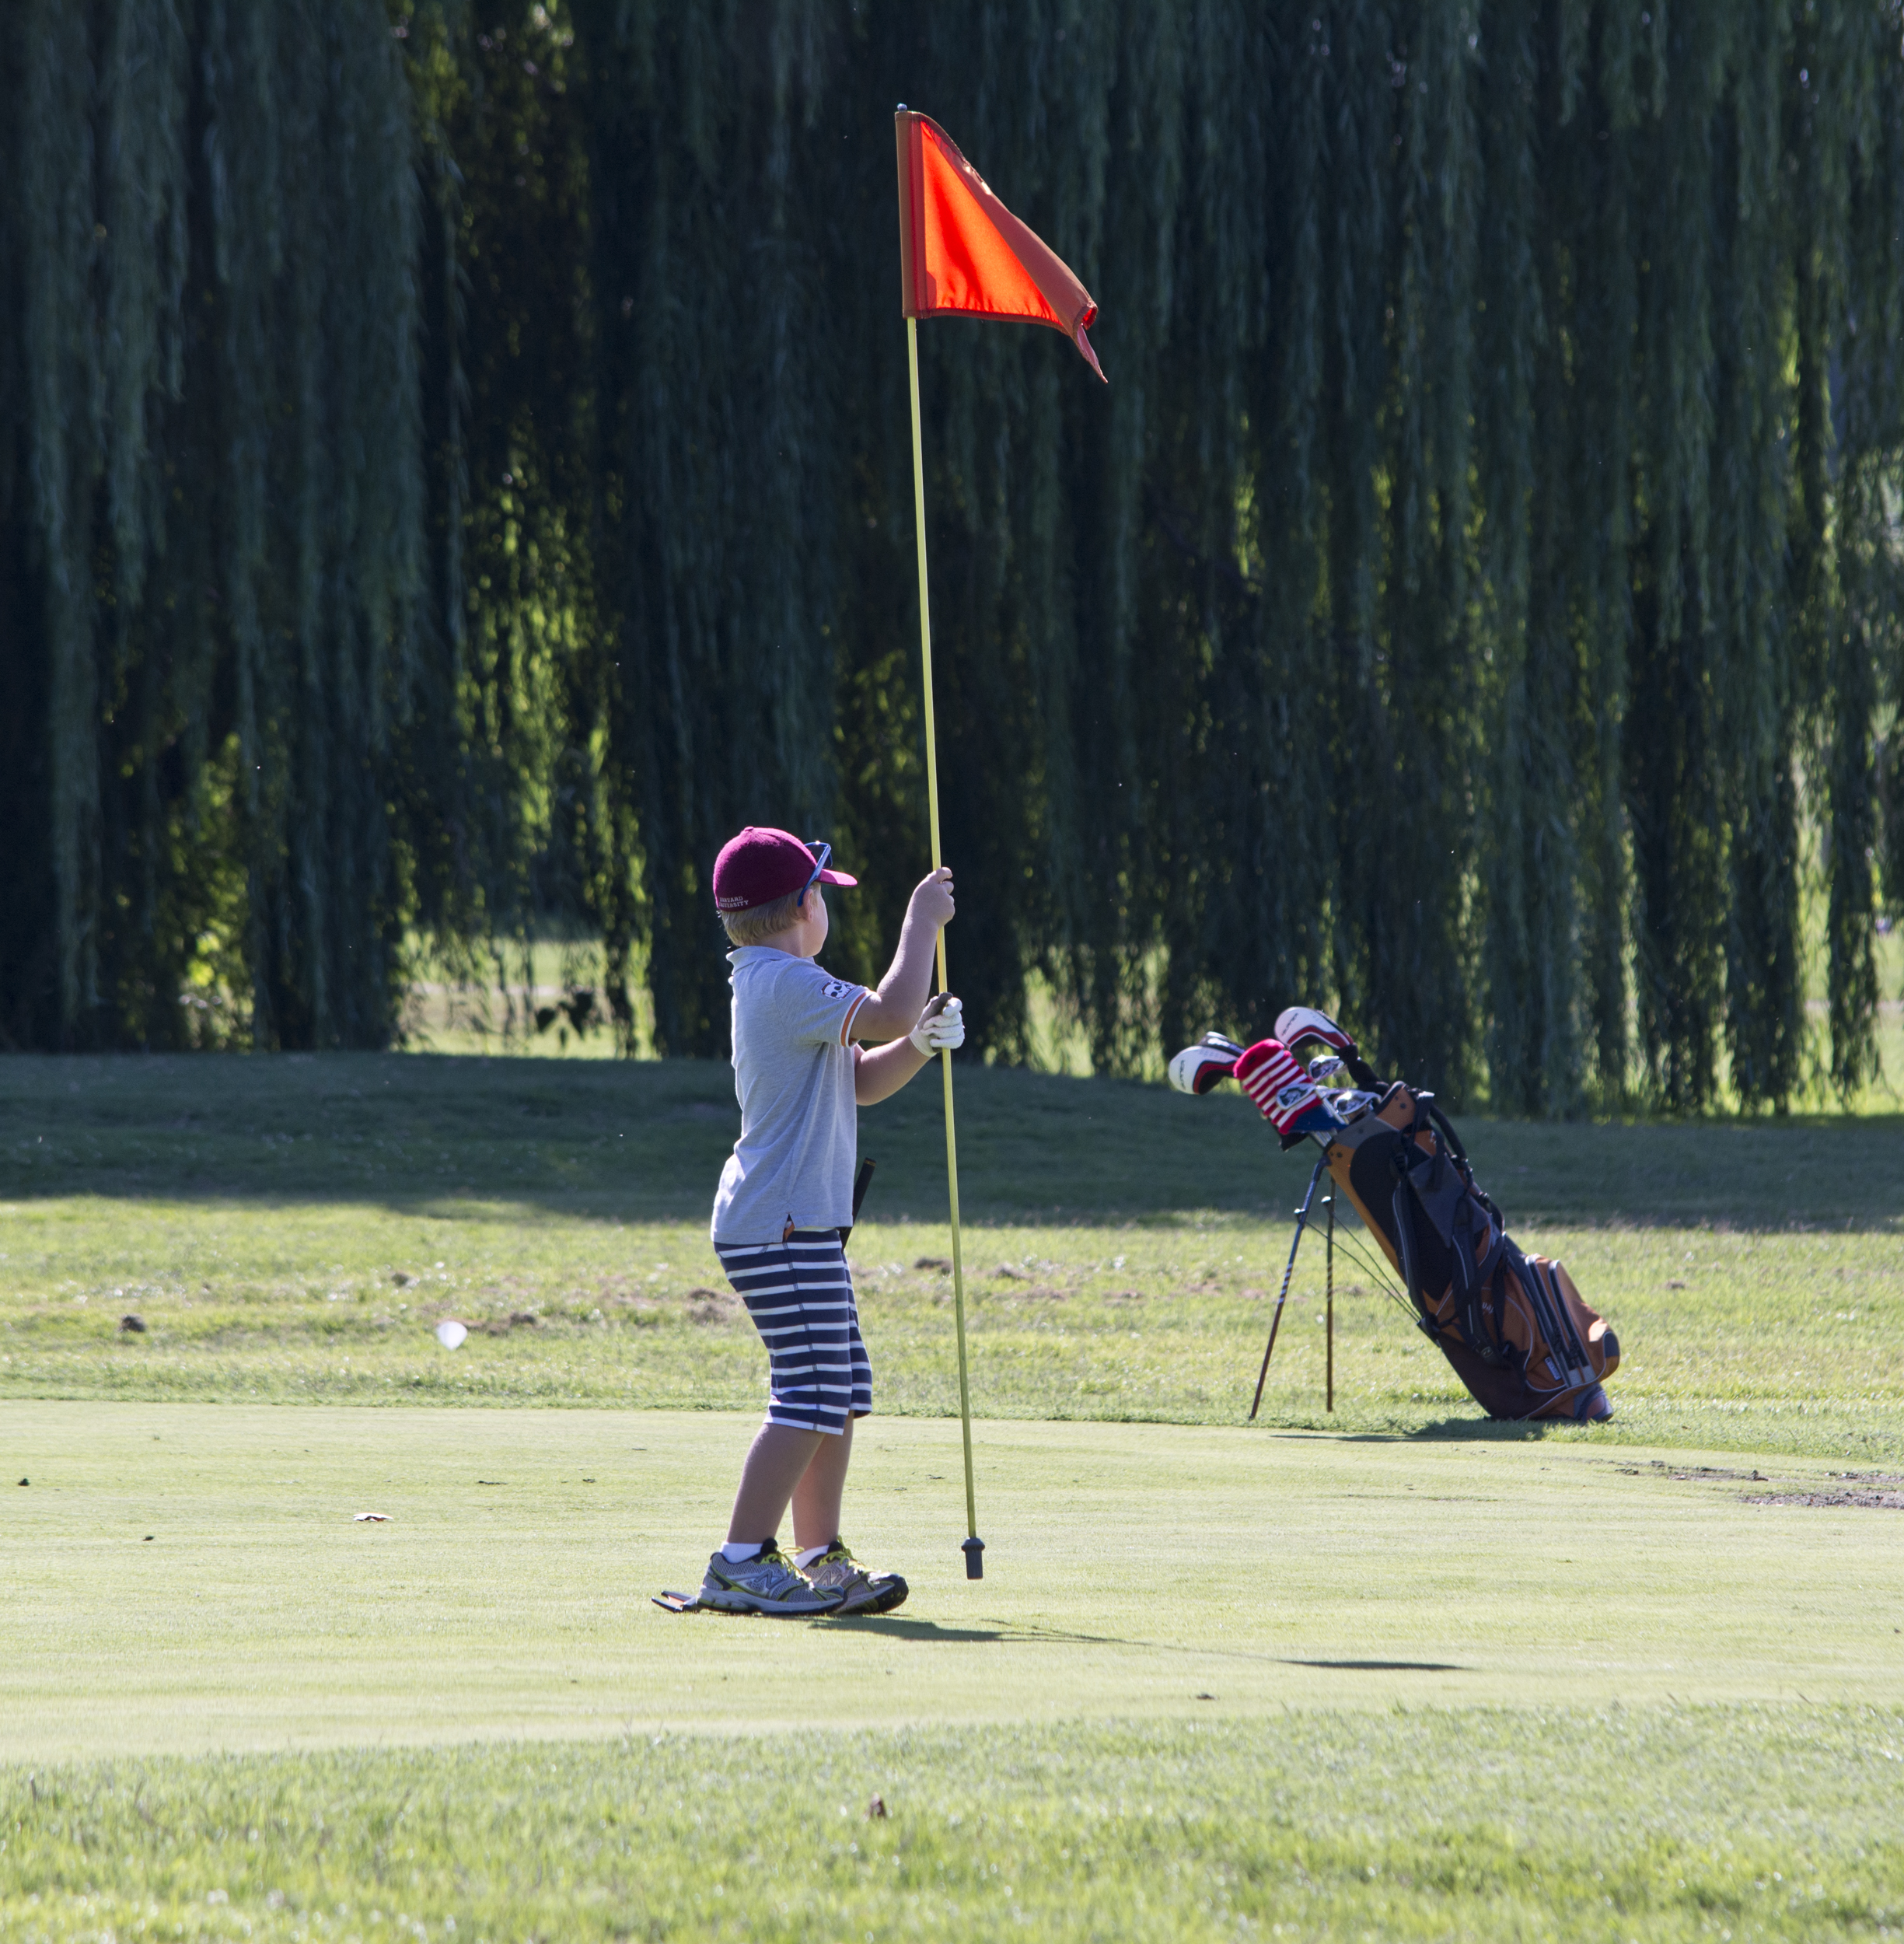 Boy_pulls_on_flag_-_East_Potomac_Golf_Course_-_2013-08-25.jpg